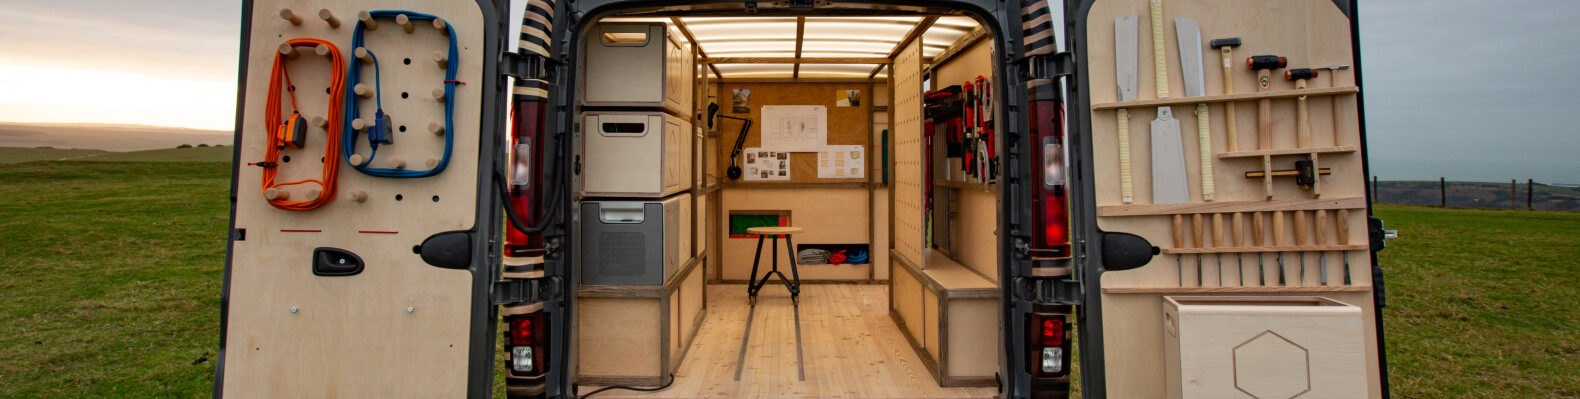 back of van with doors open to reveal woodworking shop